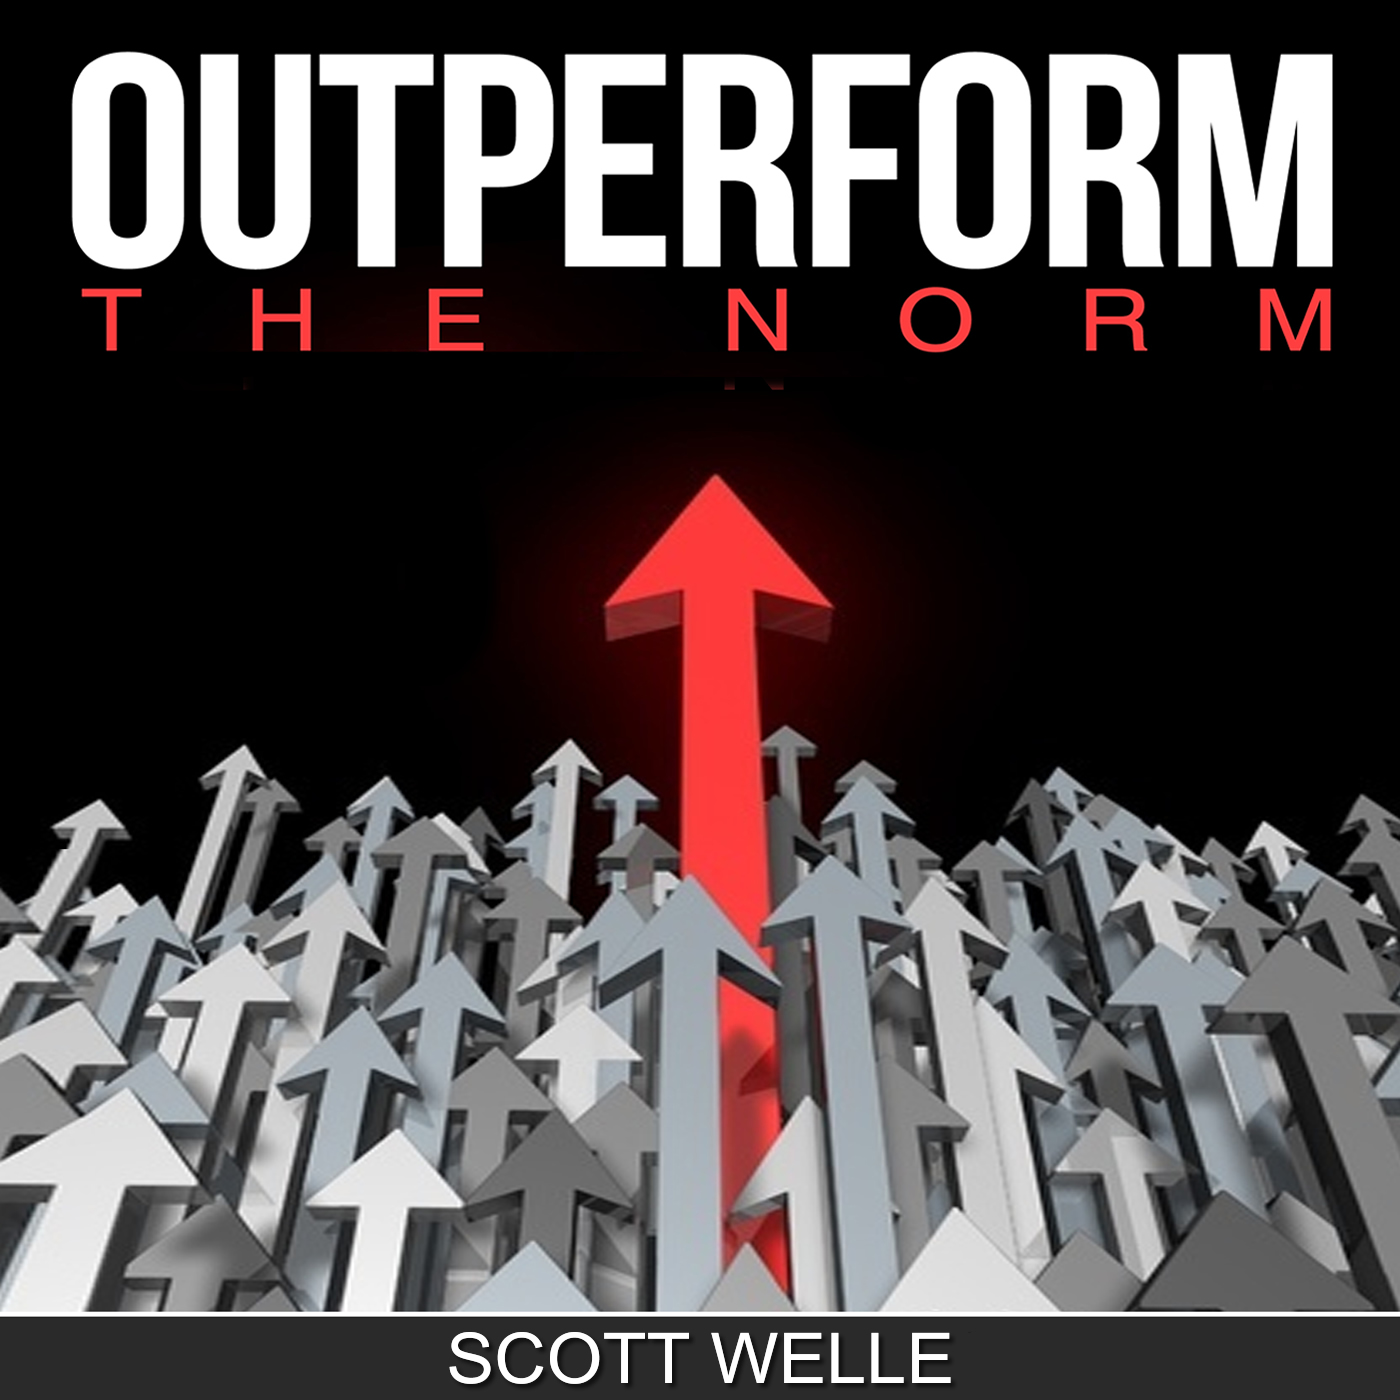 Outperform The Norm